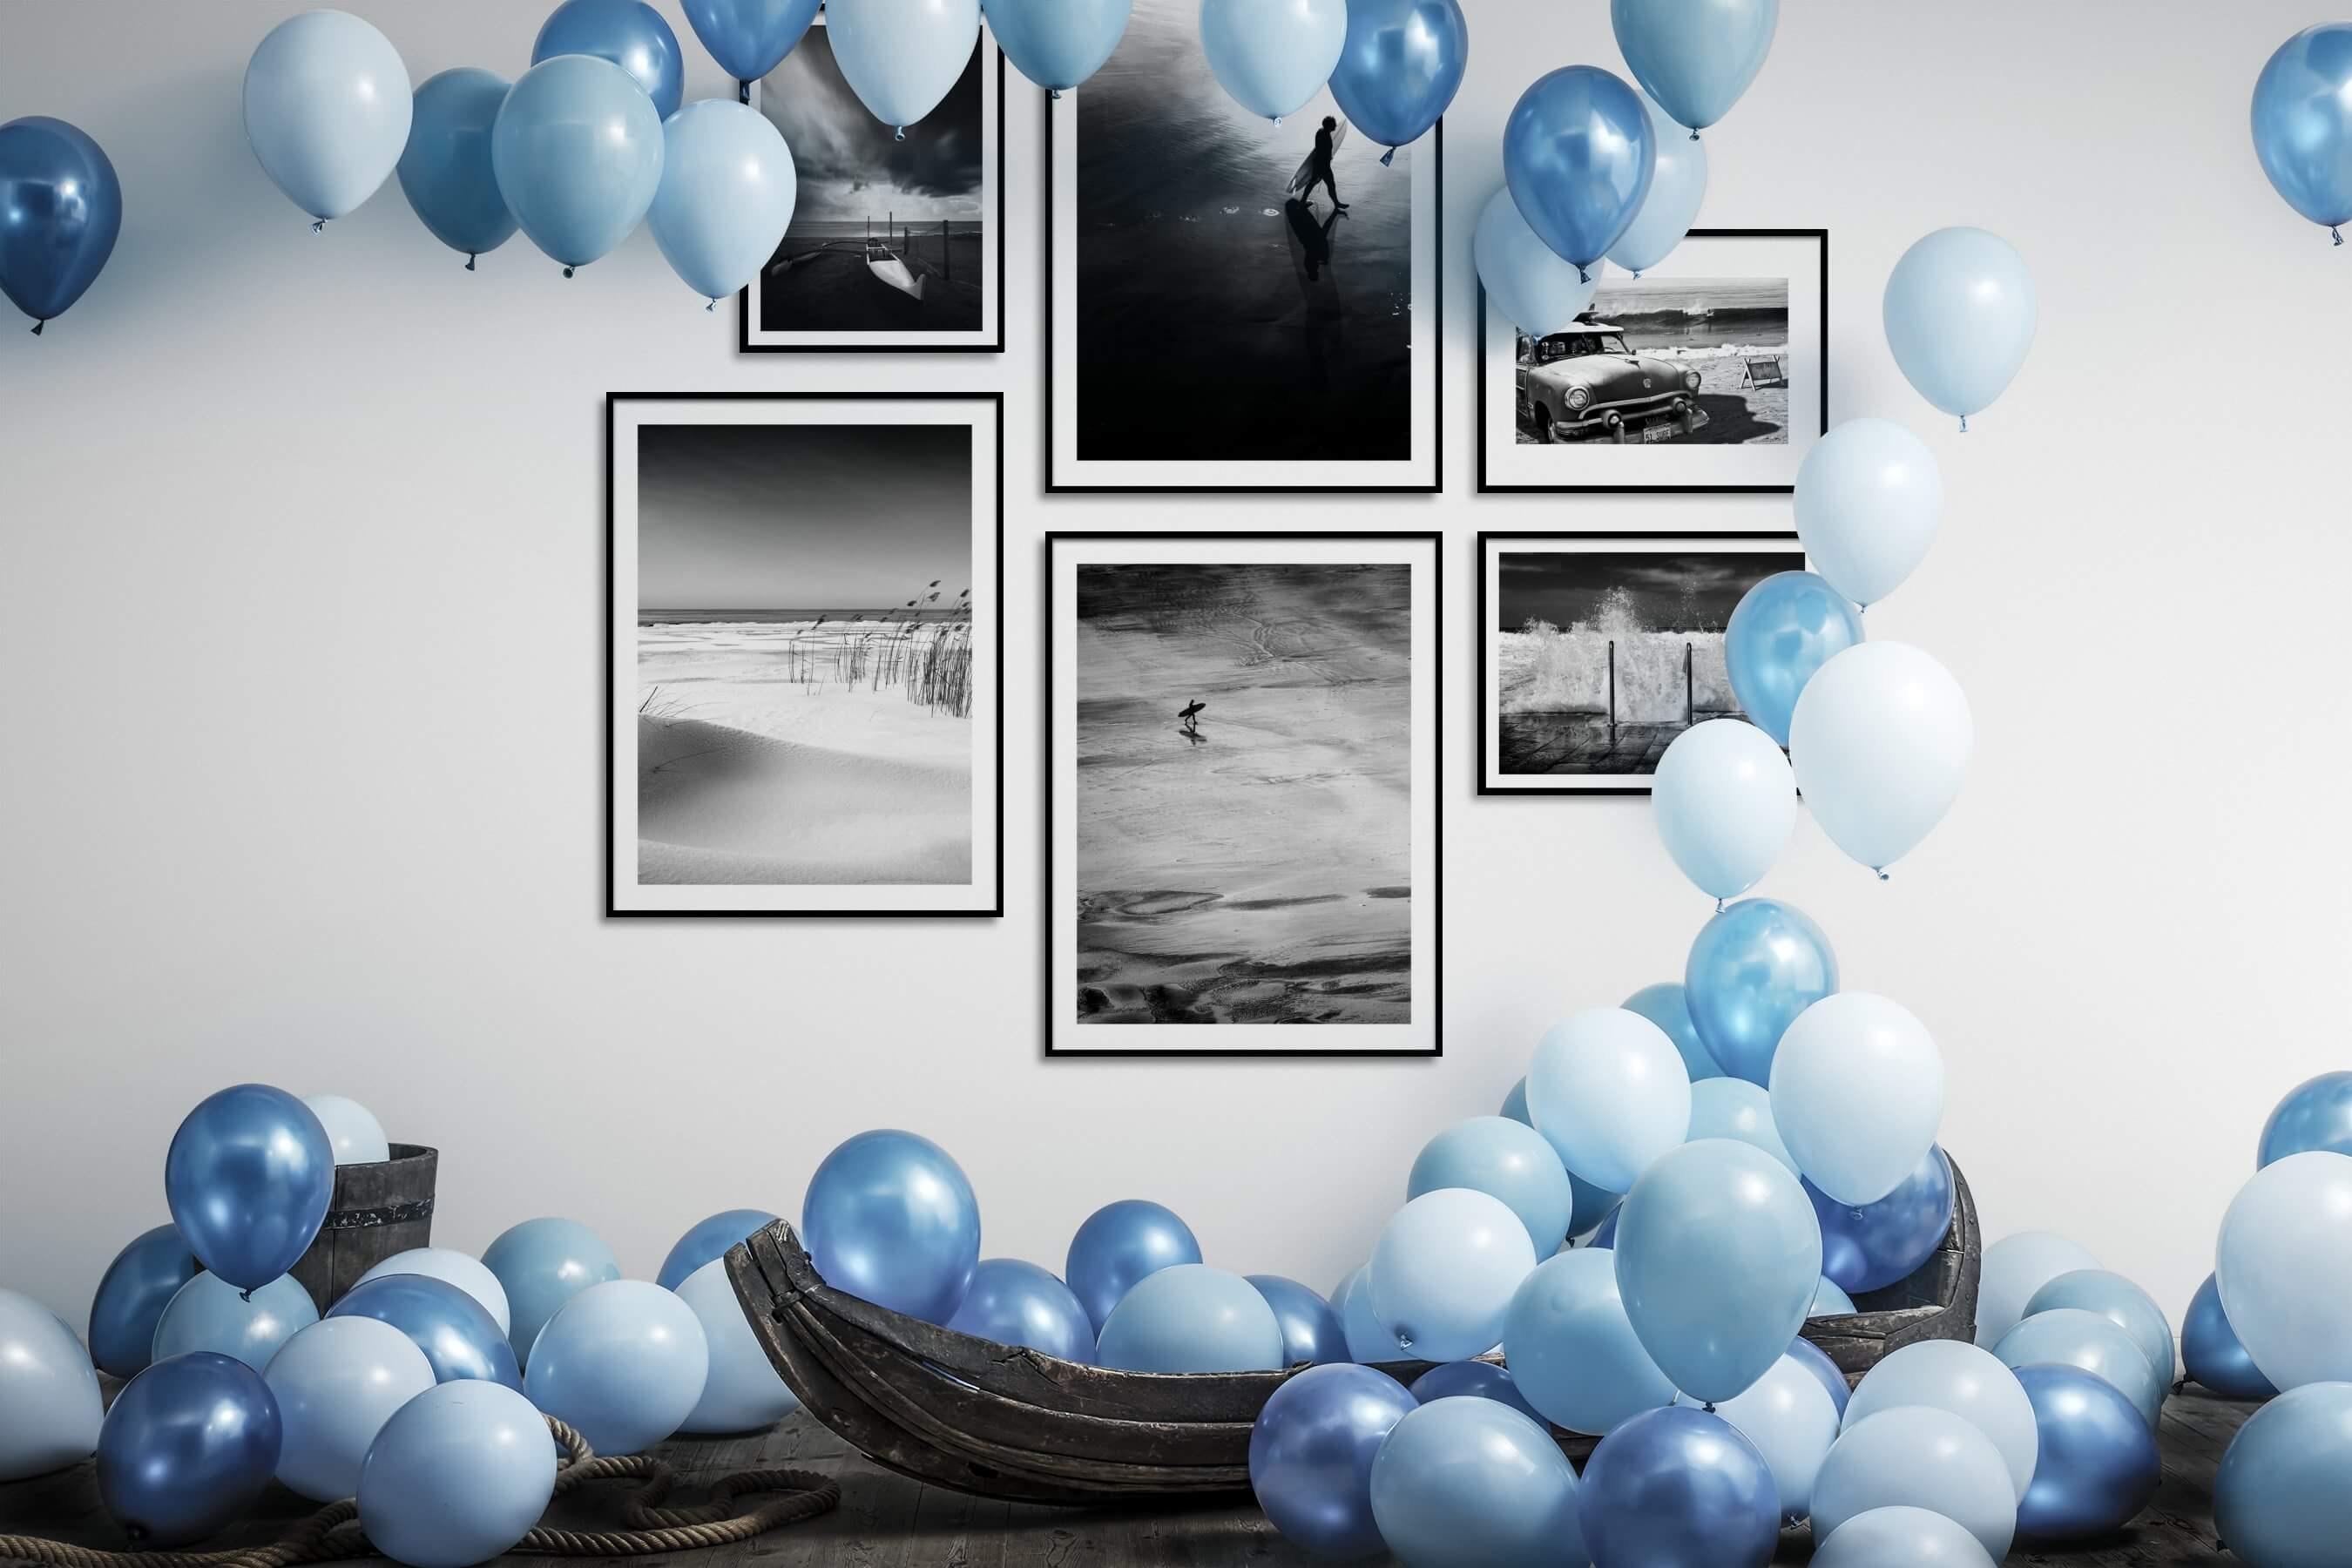 Gallery wall idea with six framed pictures arranged on a wall depicting Black & White, Beach & Water, For the Minimalist, Americana, and Vintage